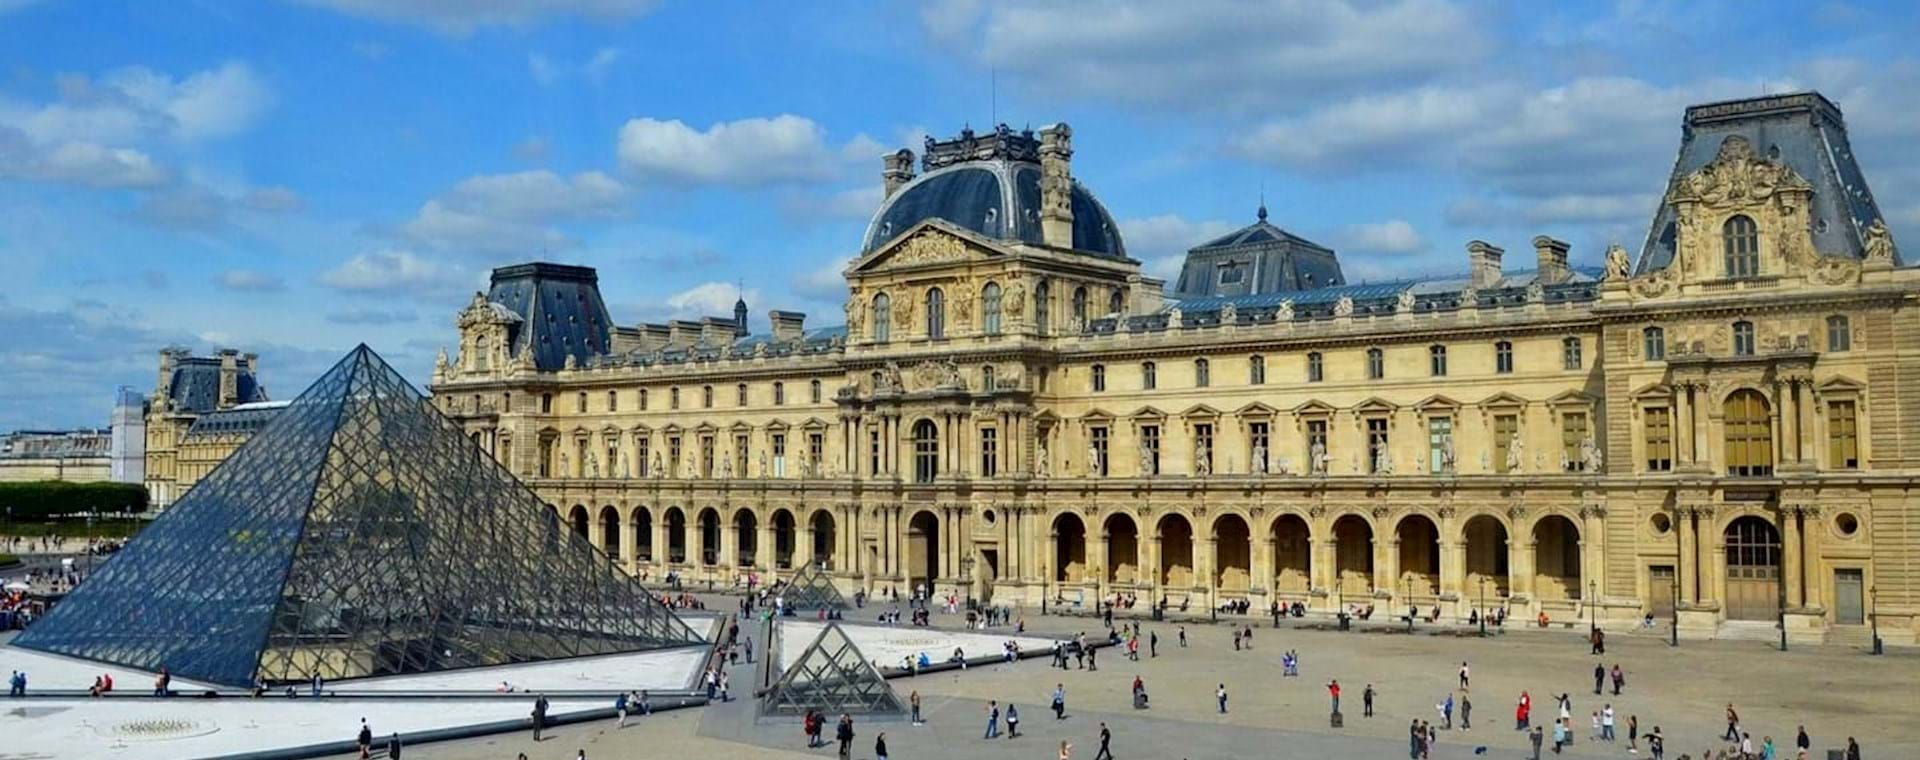 Best of Louvre Masterpieces Tour with Mona Lisa